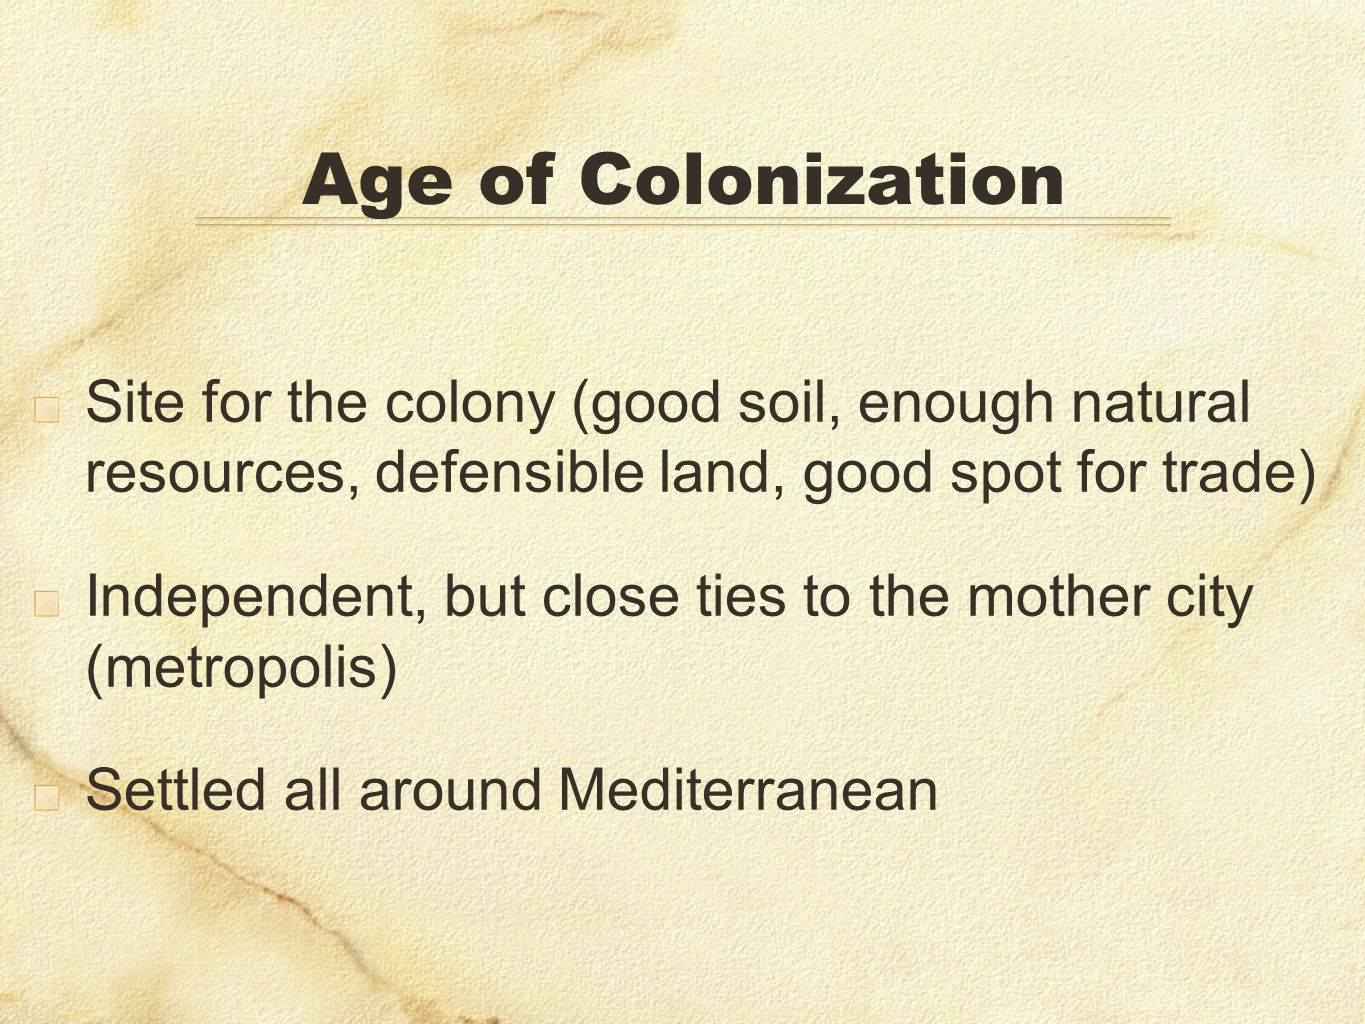 Age of ColonizationSite for the colony (good soil, enough natural resources, defensible land, good spot for trade)